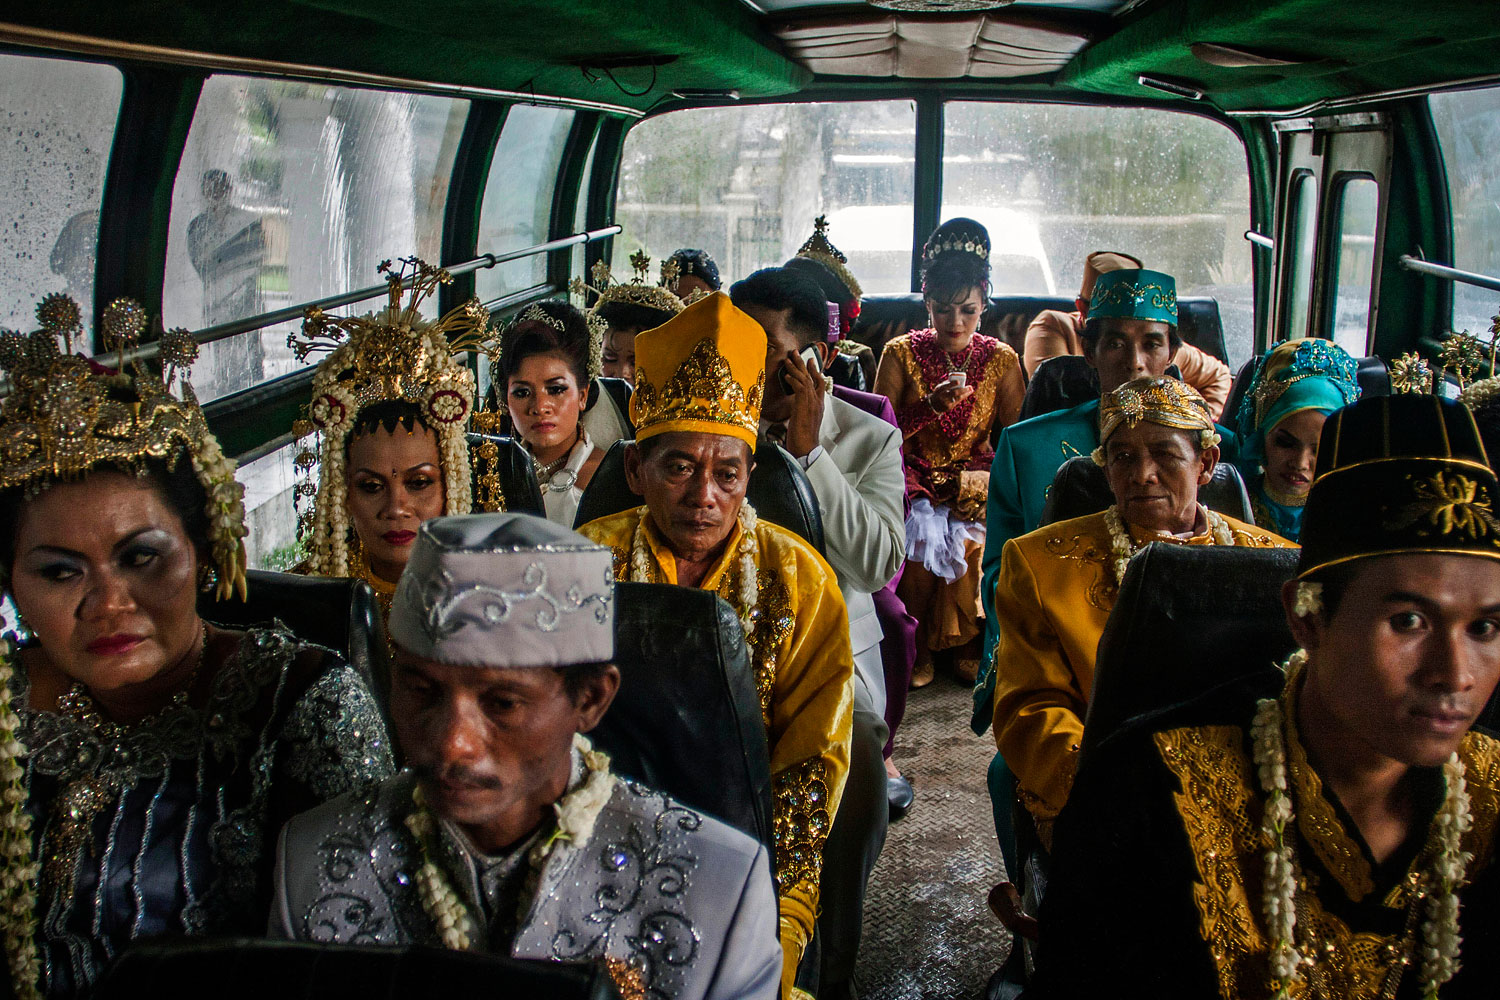 image: Brides and grooms ride a bus in a parade during a mass wedding ceremony in Yogyakarta, Indonesia.